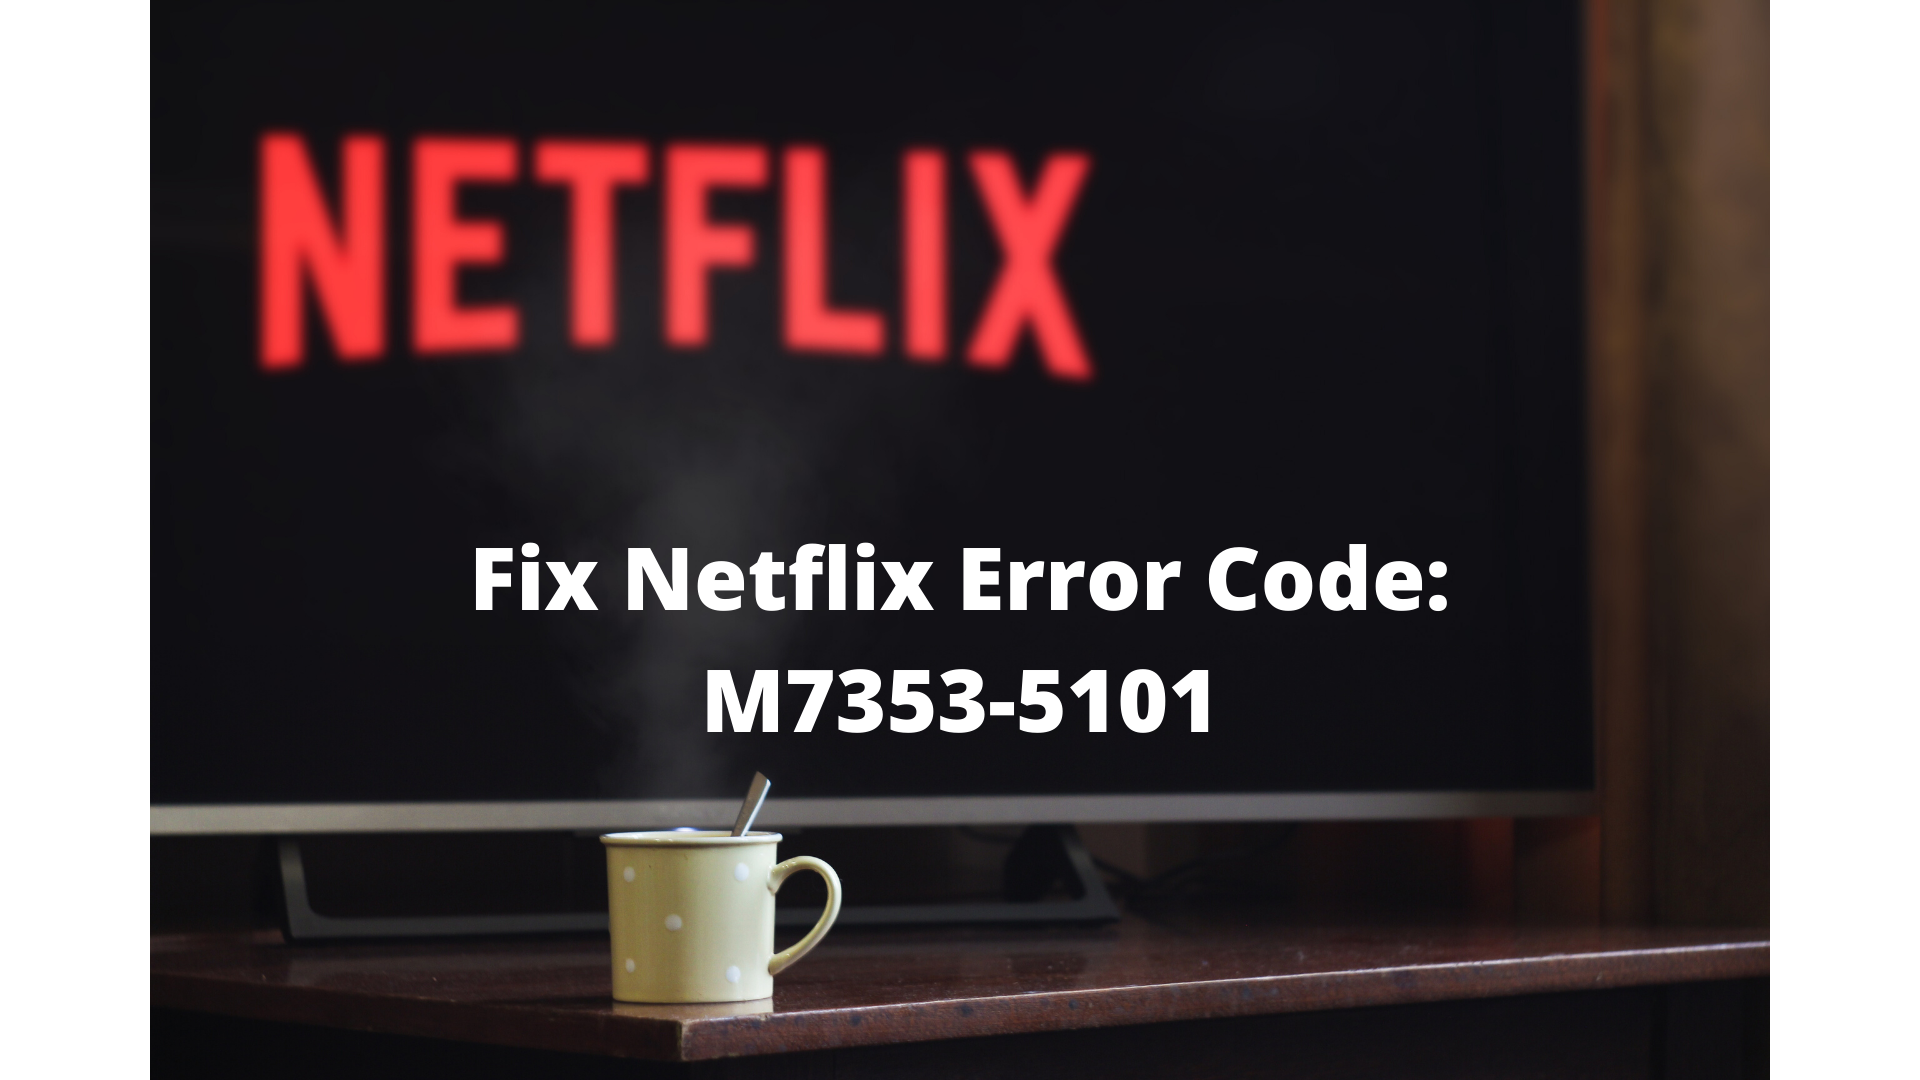 How To Fix Netflix Error Code M7353 5101 Submitted 1 year ago by eurosandcents. how to fix netflix error code m7353 5101